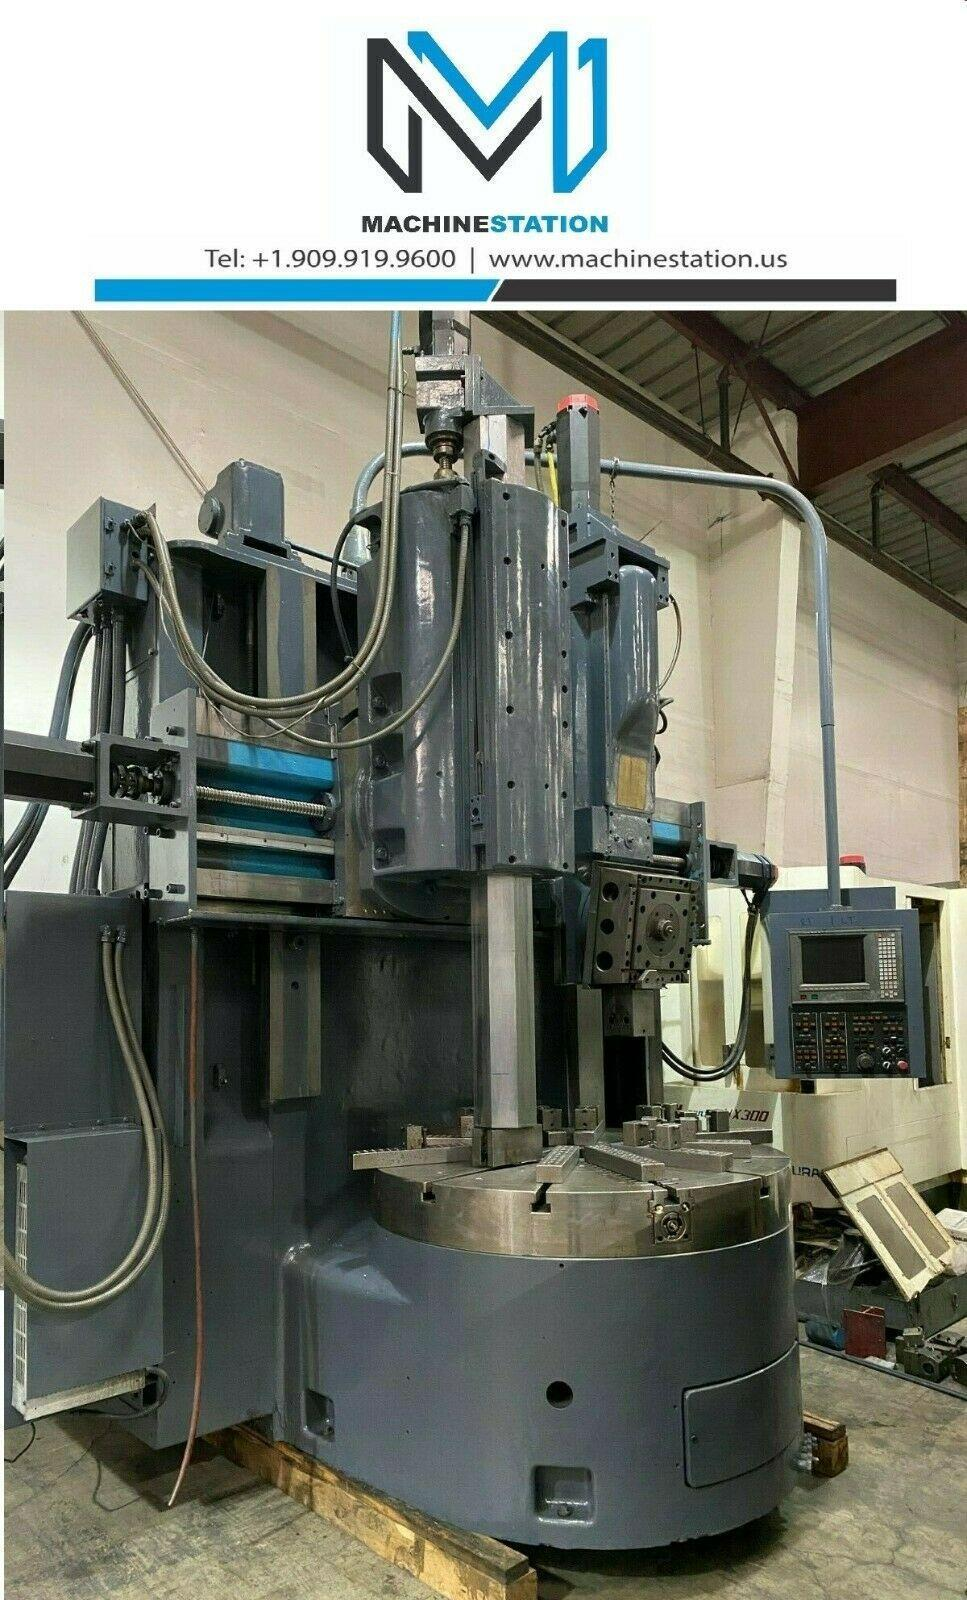 "BULLARD DYNATROL 56"" CNC VERTICAL BORING TURNING CENTER"